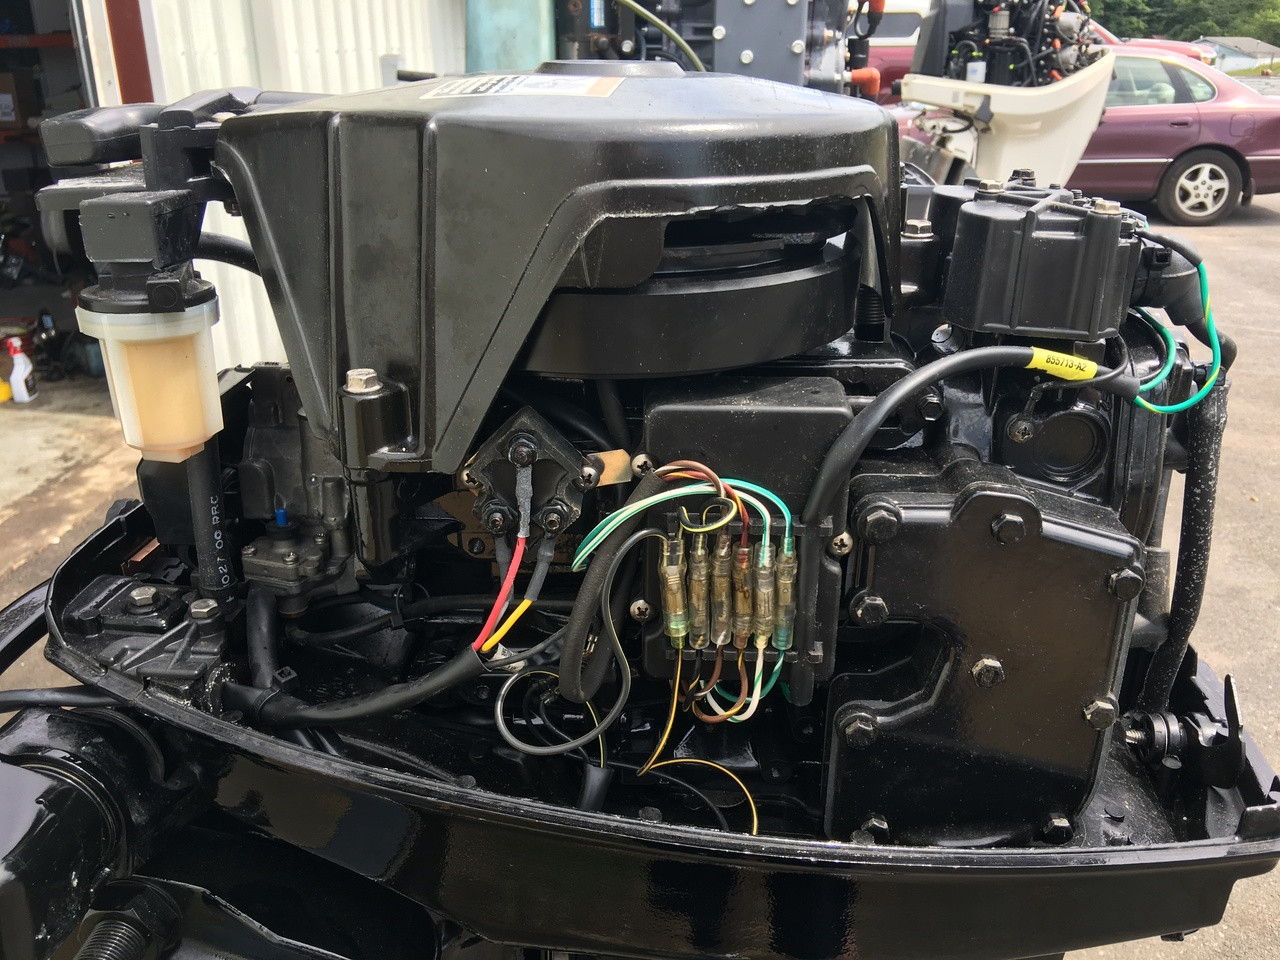 Wiring Diagram Mercury 25hp Outboard - Wiring Diagram Schemas